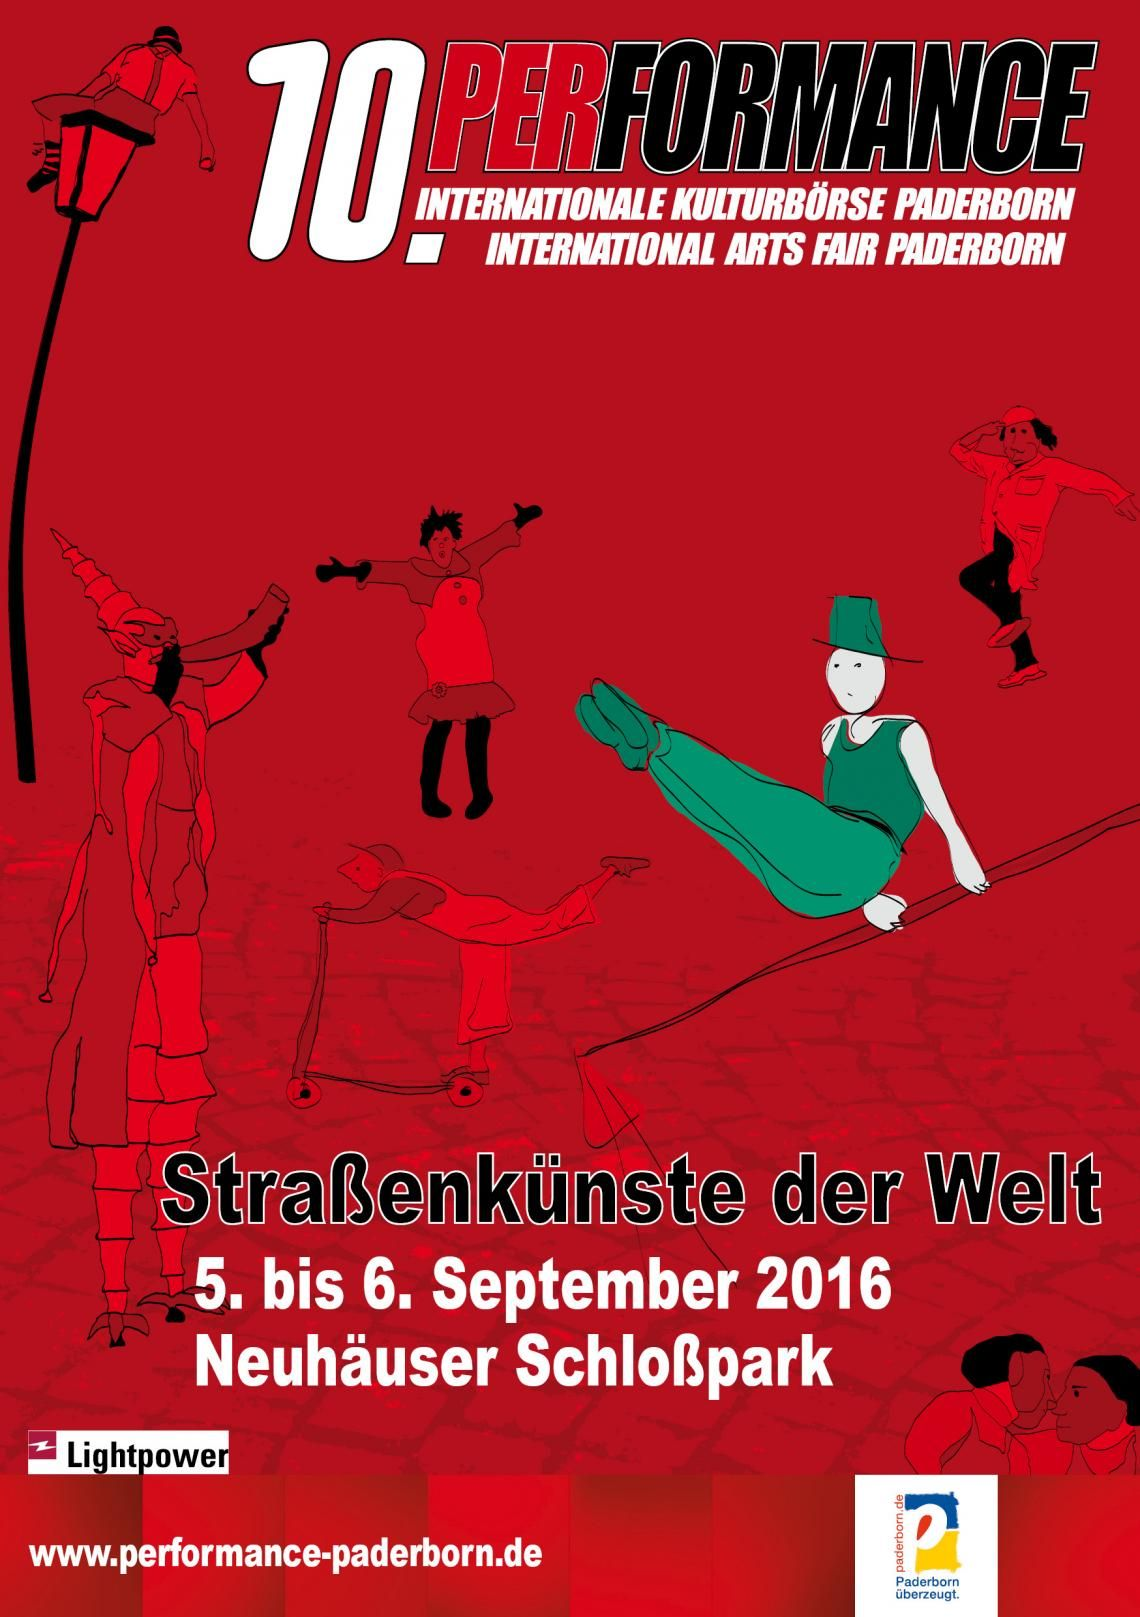 Performance 2016 Internationale Börse für Kunst und Kultur im öffentlichen Raum / International Marketplace for Arts and Culture in public spaces